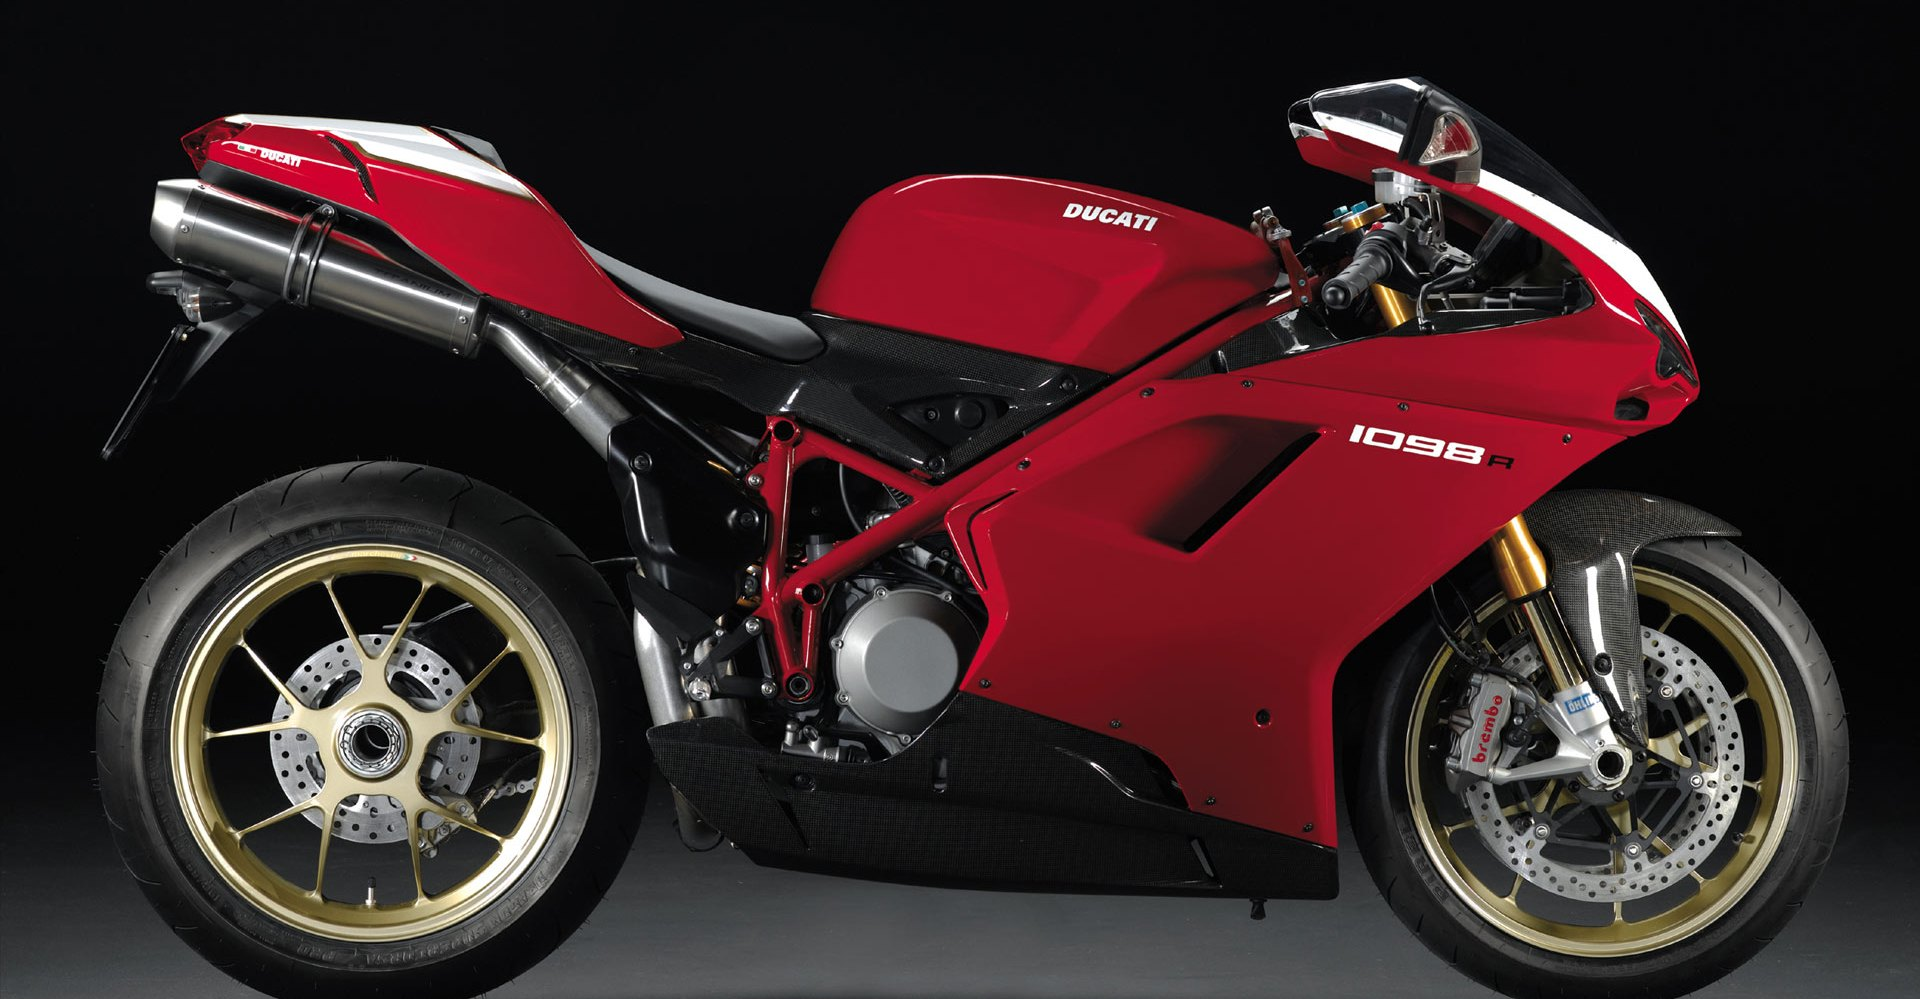 Ducati SS 1000 DS 2003 images #78923